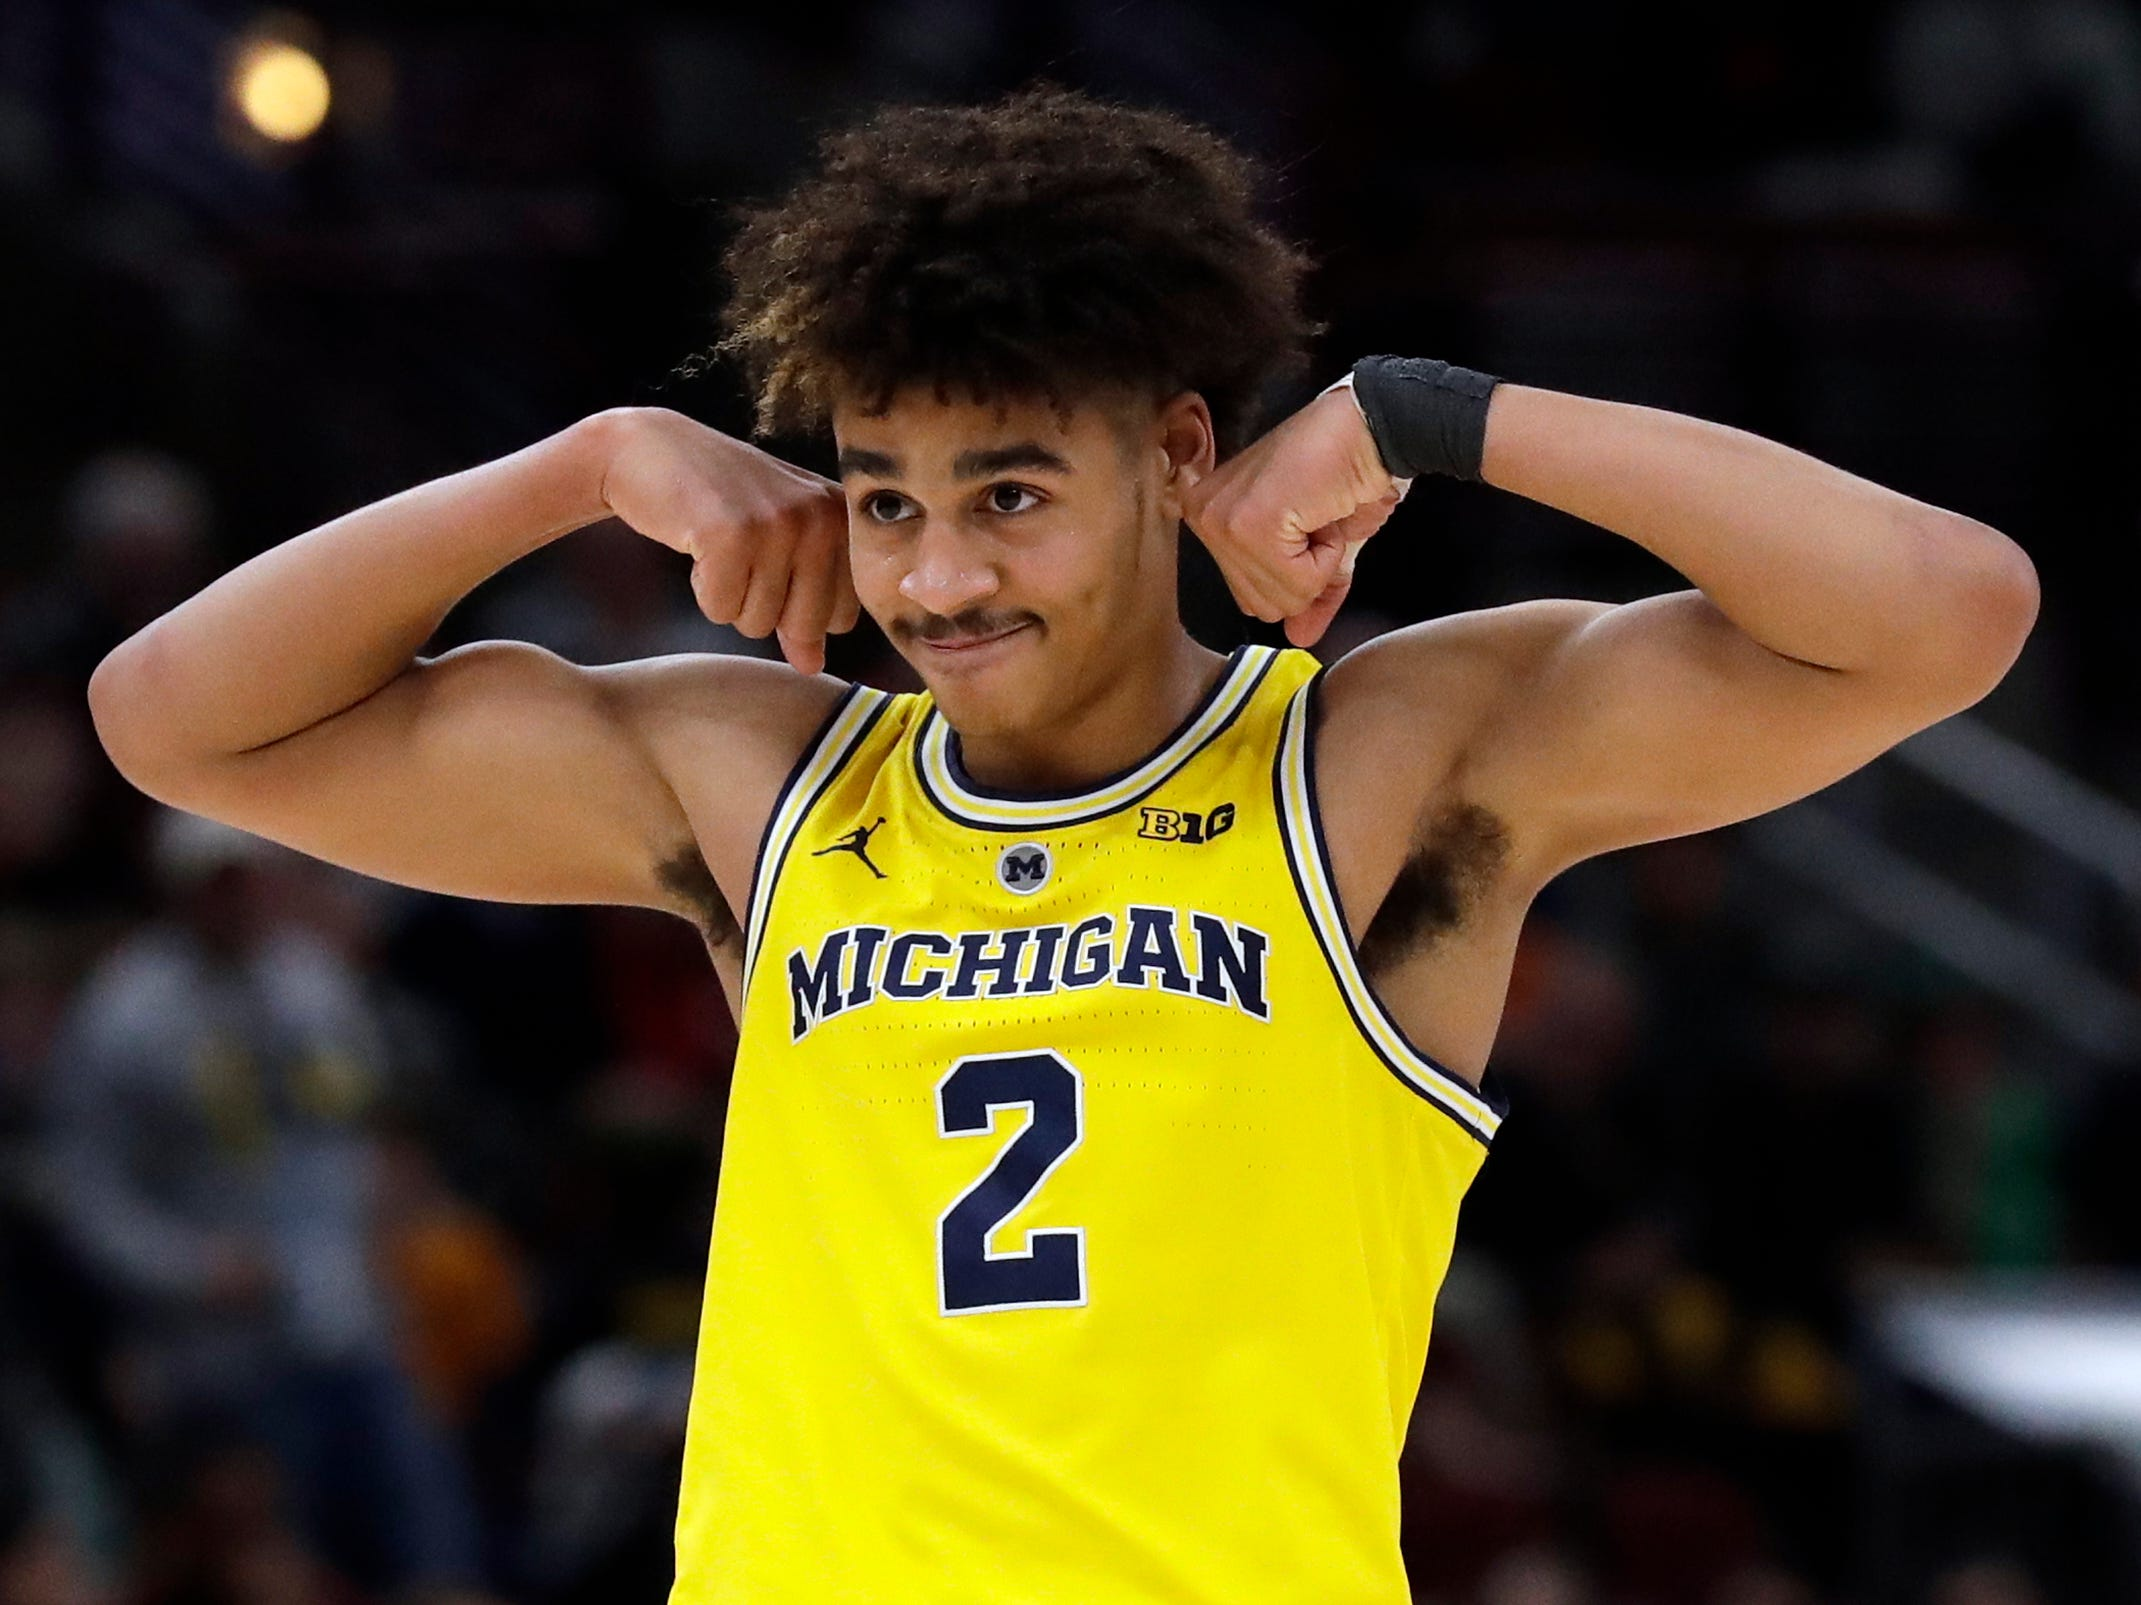 Michigan's Jordan Poole reacts after Eli Brooks scores a basket during the second half of a 76-49 Big Ten tournament semifinal victory over Minnesota on Saturday, March 16, 2019, at United Center in Chicago.